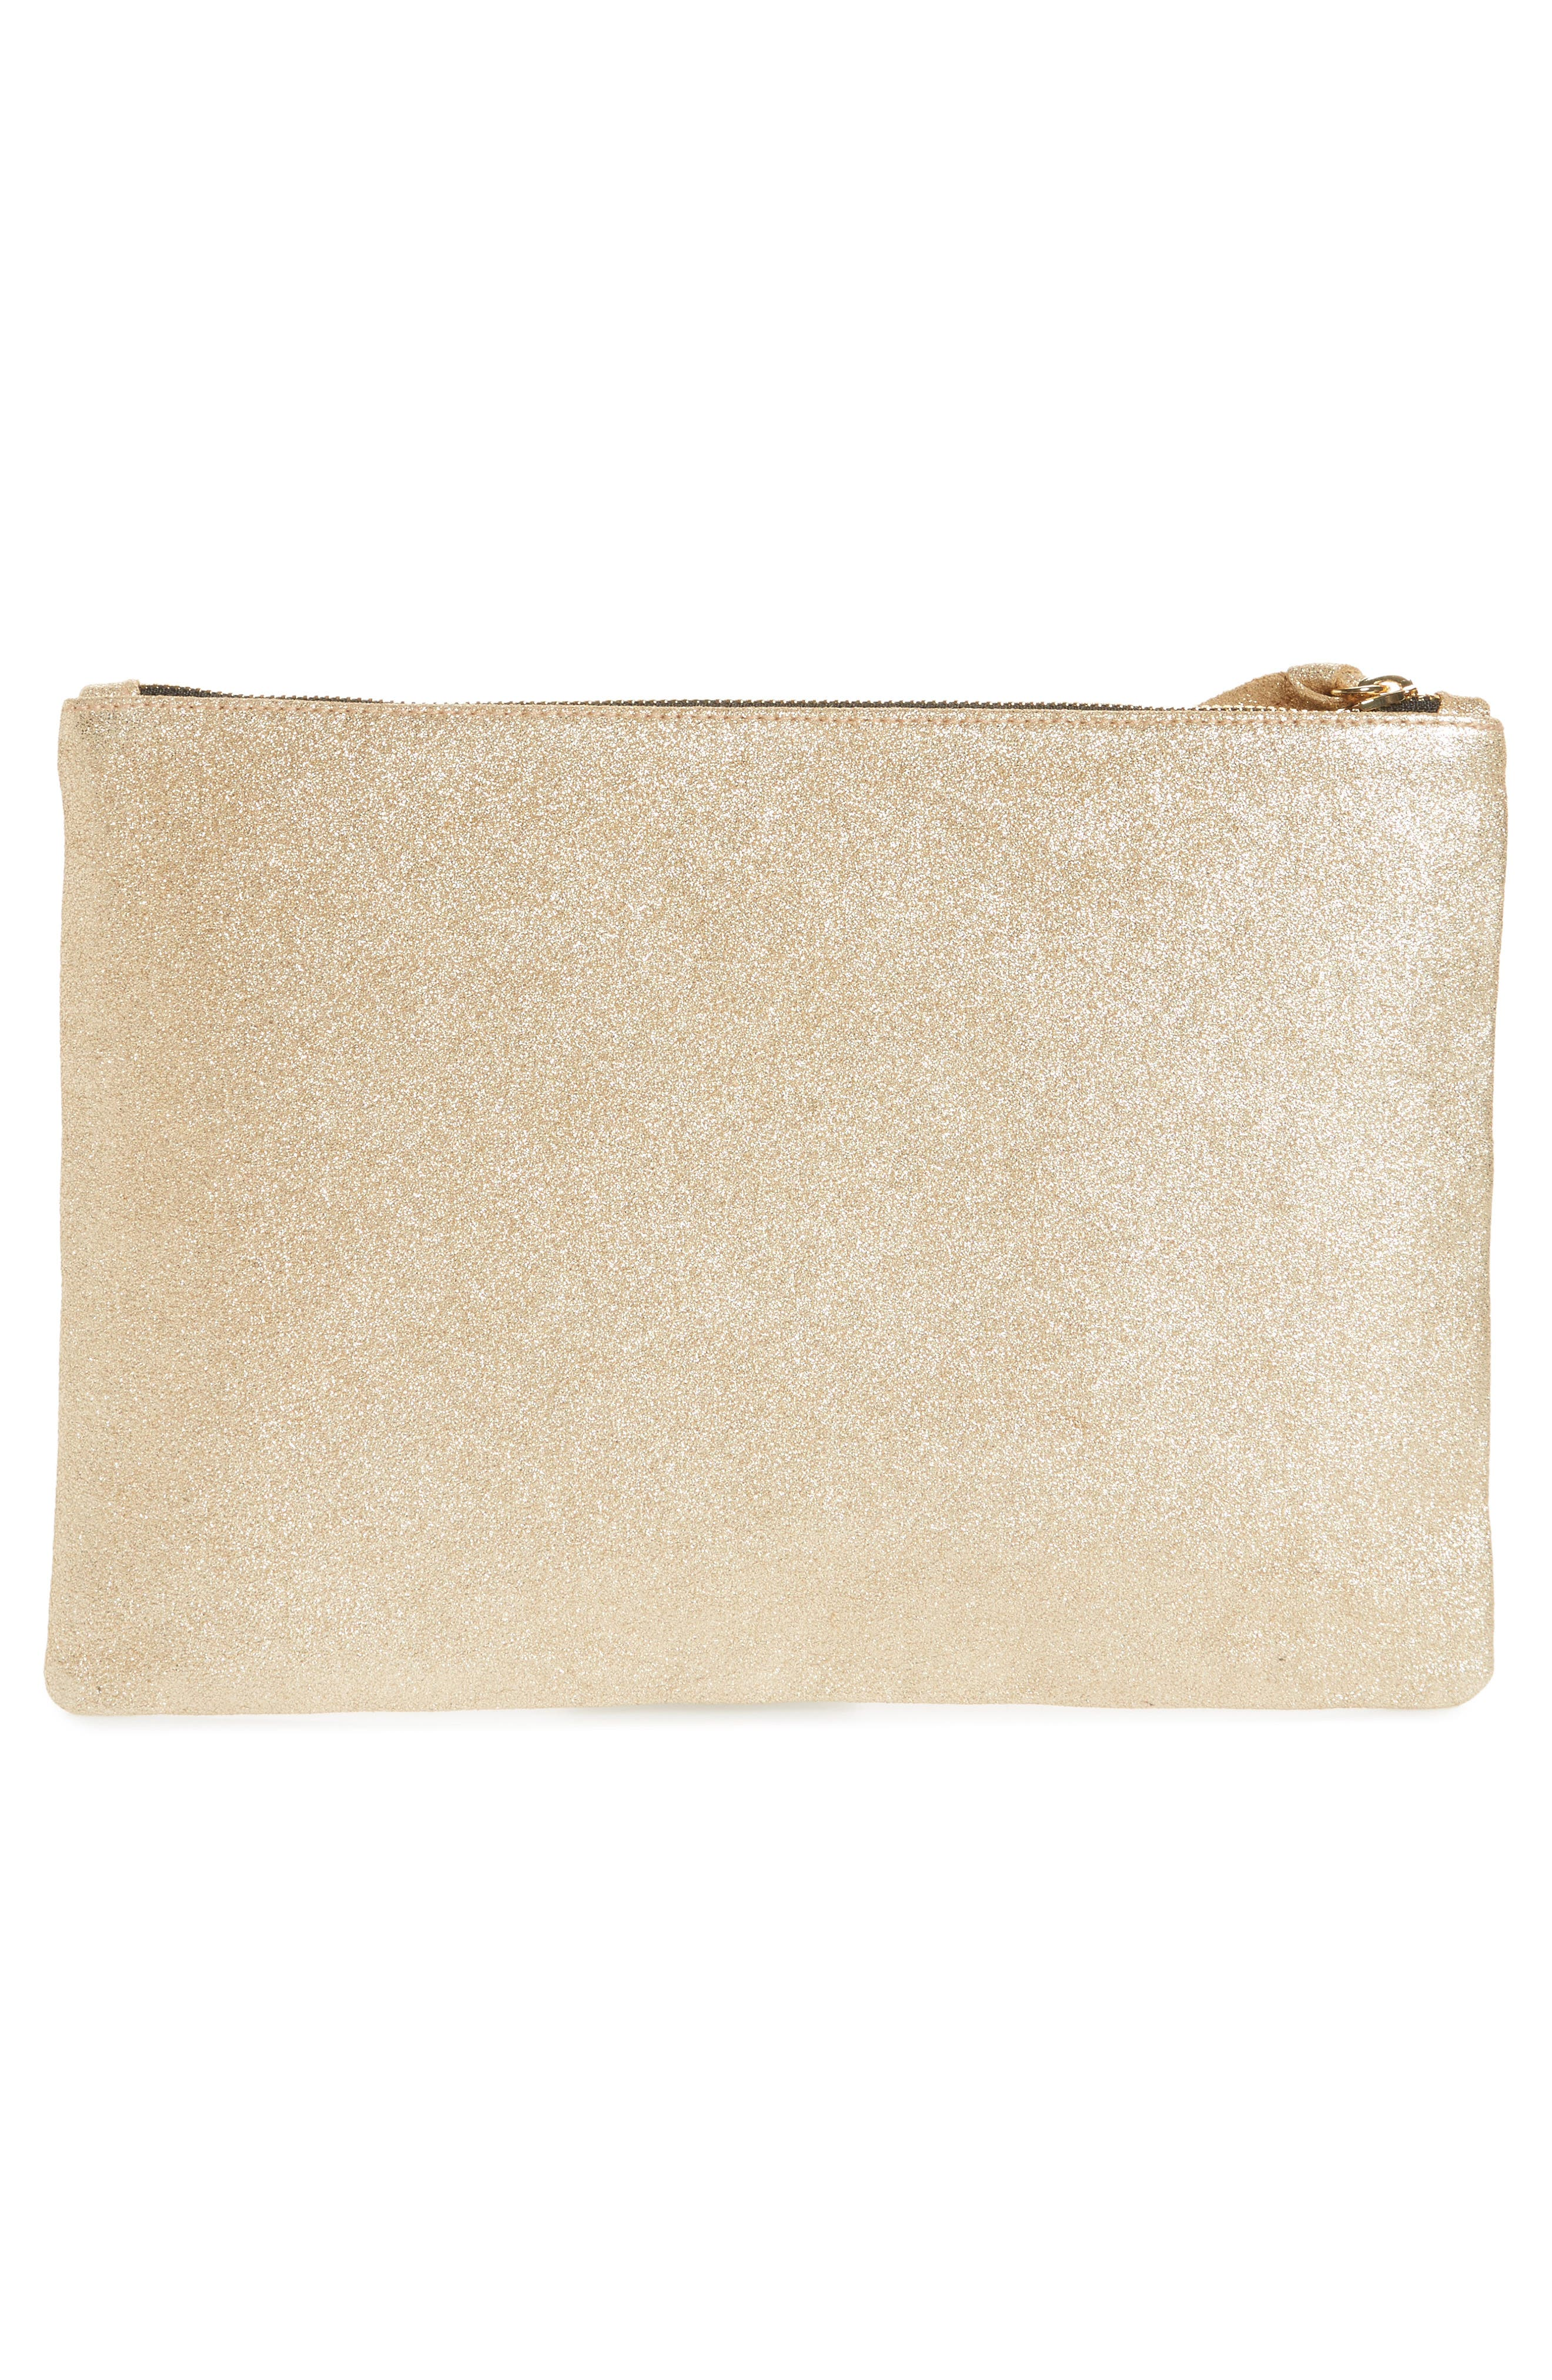 Alternate Image 3  - Clare V. Maison Metallic Suede Flat Clutch